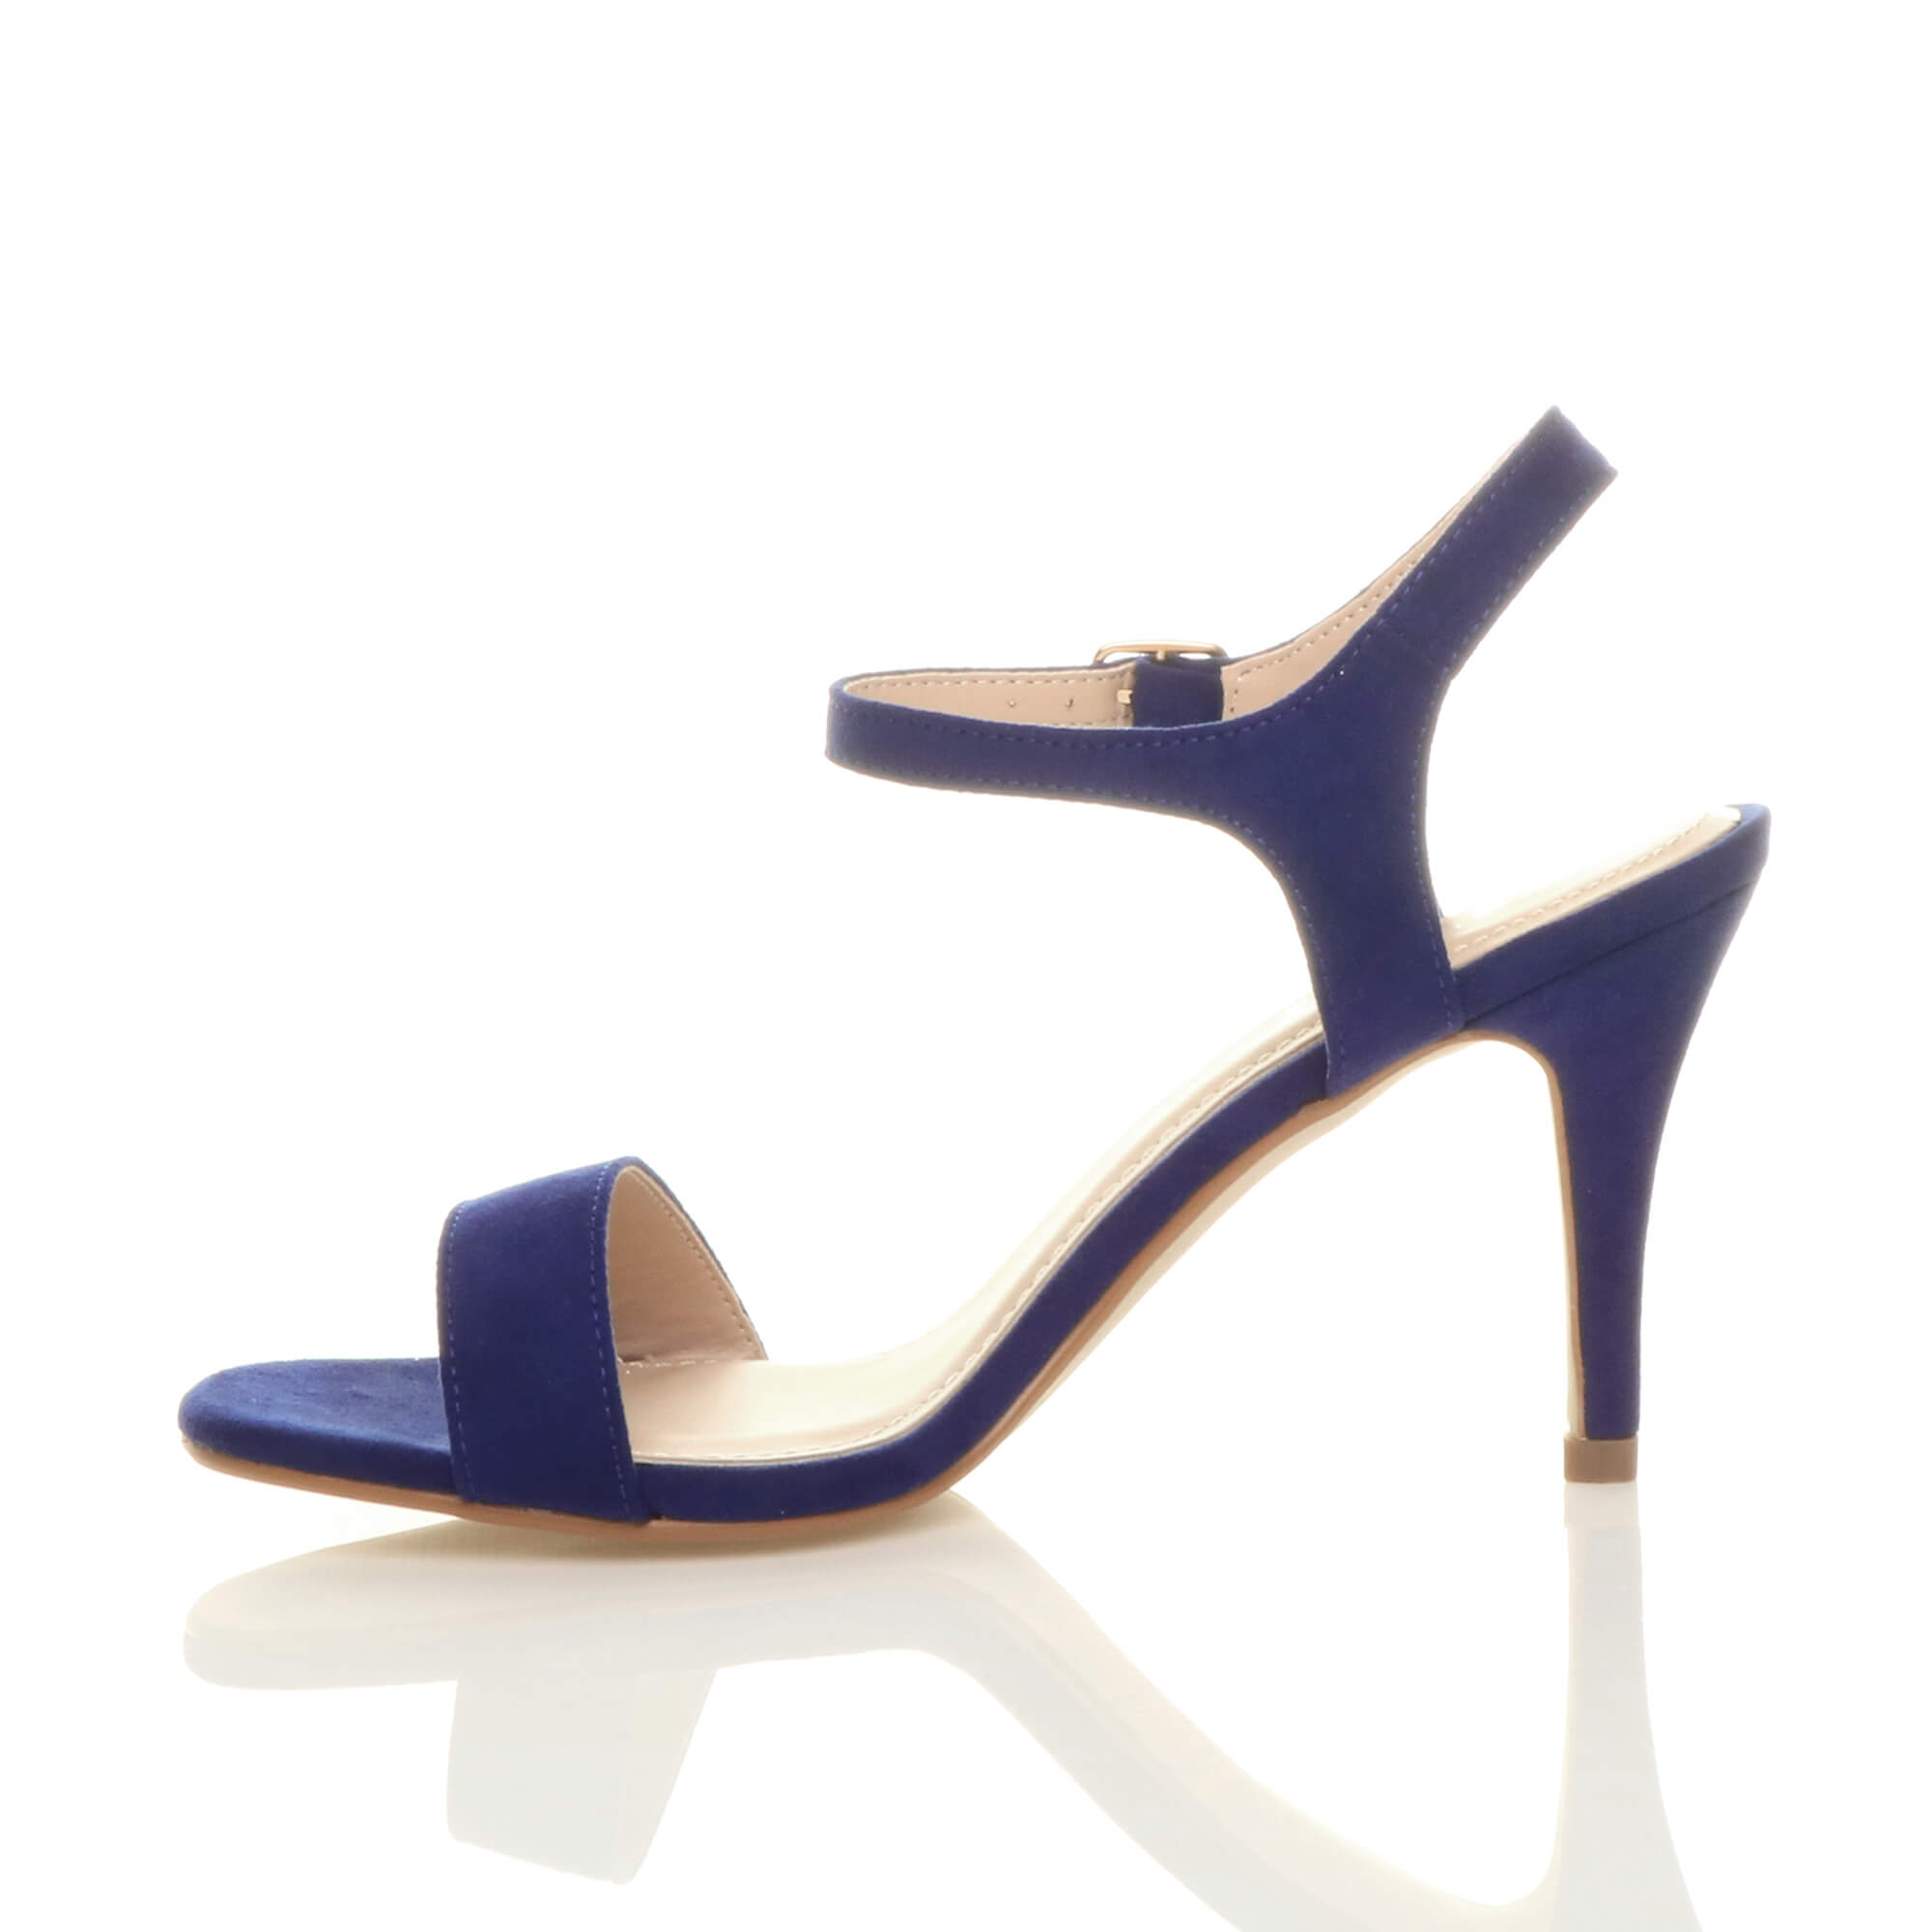 WOMENS-LADIES-HIGH-HEEL-BUCKLE-STRAPPY-BASIC-BARELY-THERE-SANDALS-SHOES-SIZE thumbnail 18